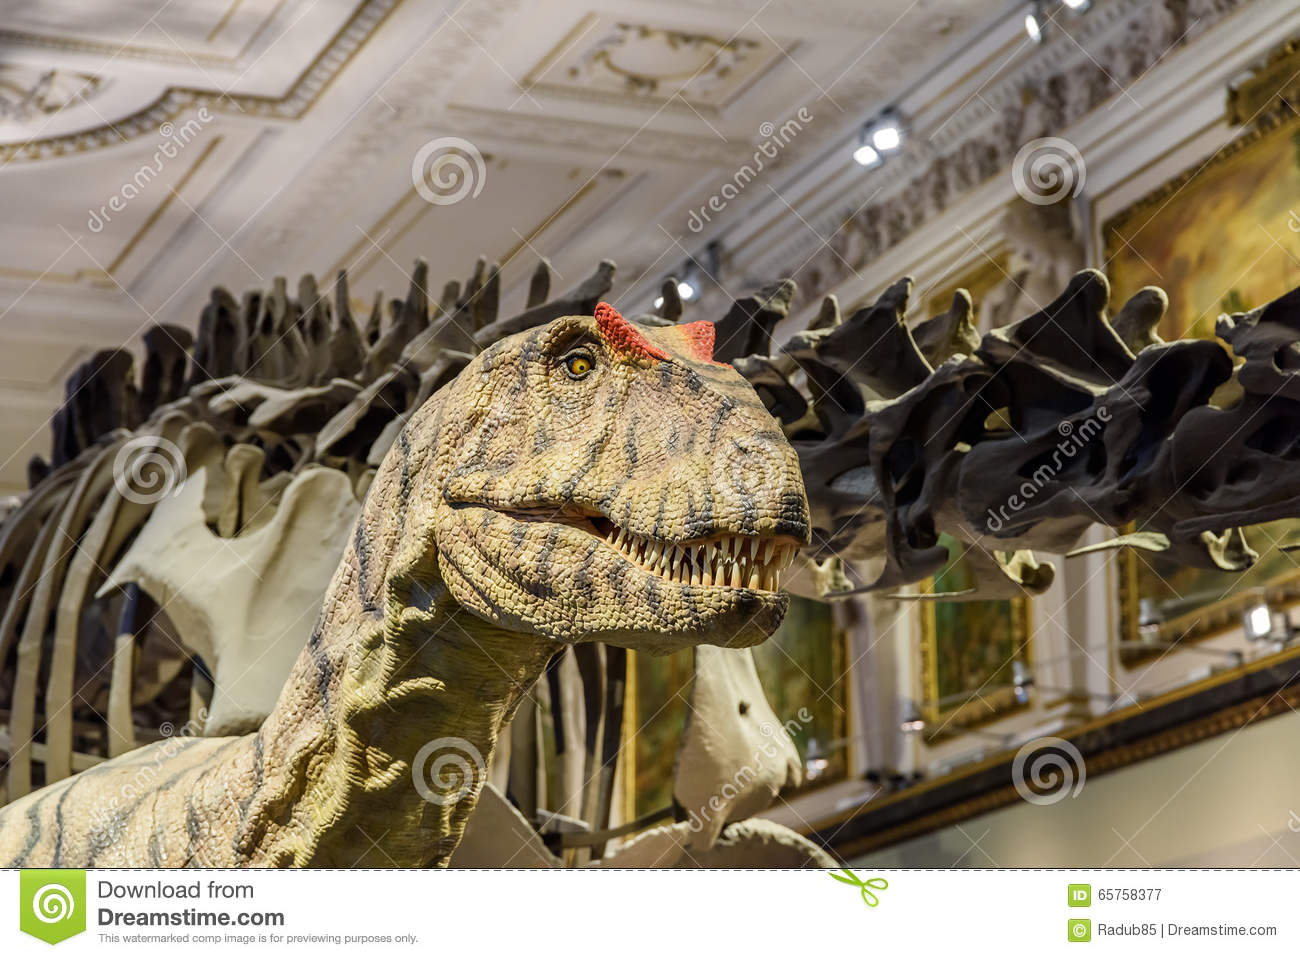 People Visit Dinosaur Prehistoric Exhibit At The Museum of Natural History (Naturhistorisches Museum)